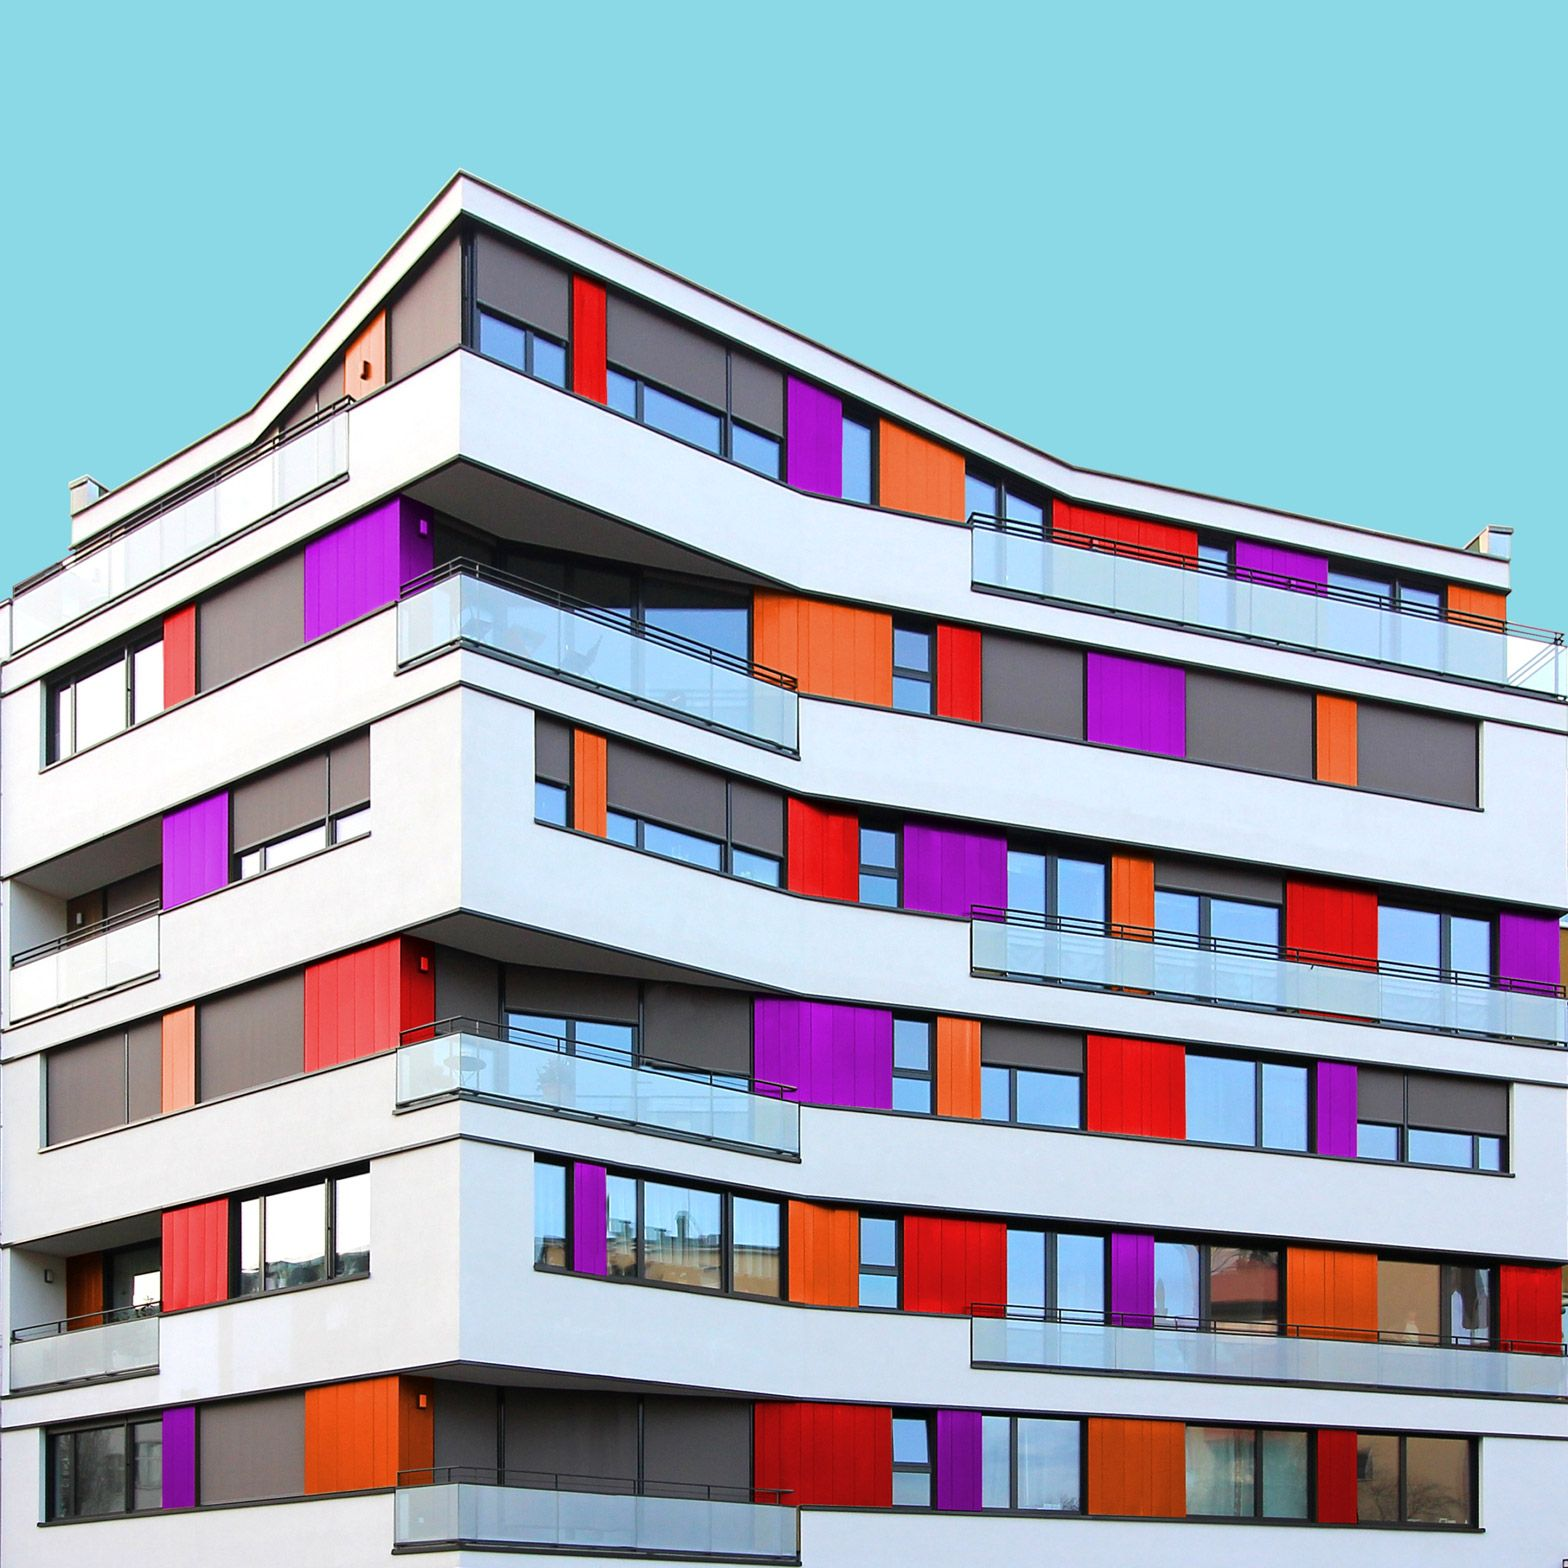 colourful berlin photography architecture essay by paul eis from colourful berlin photography architecture essay by paul eis from